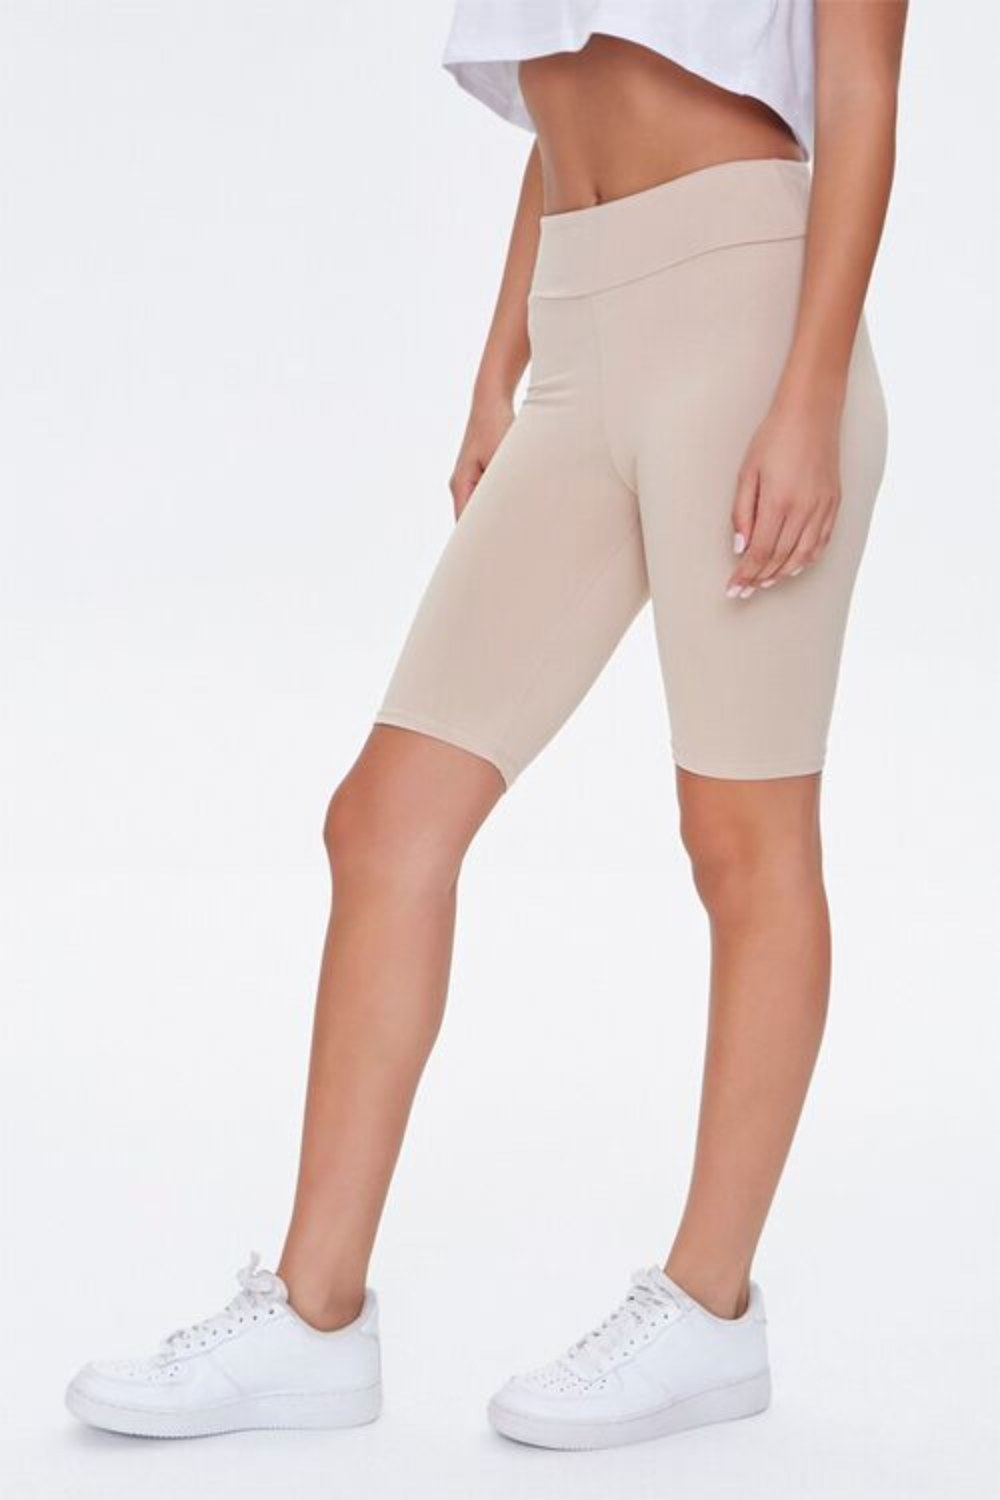 Model wearing the shorts in taupe from the legs down